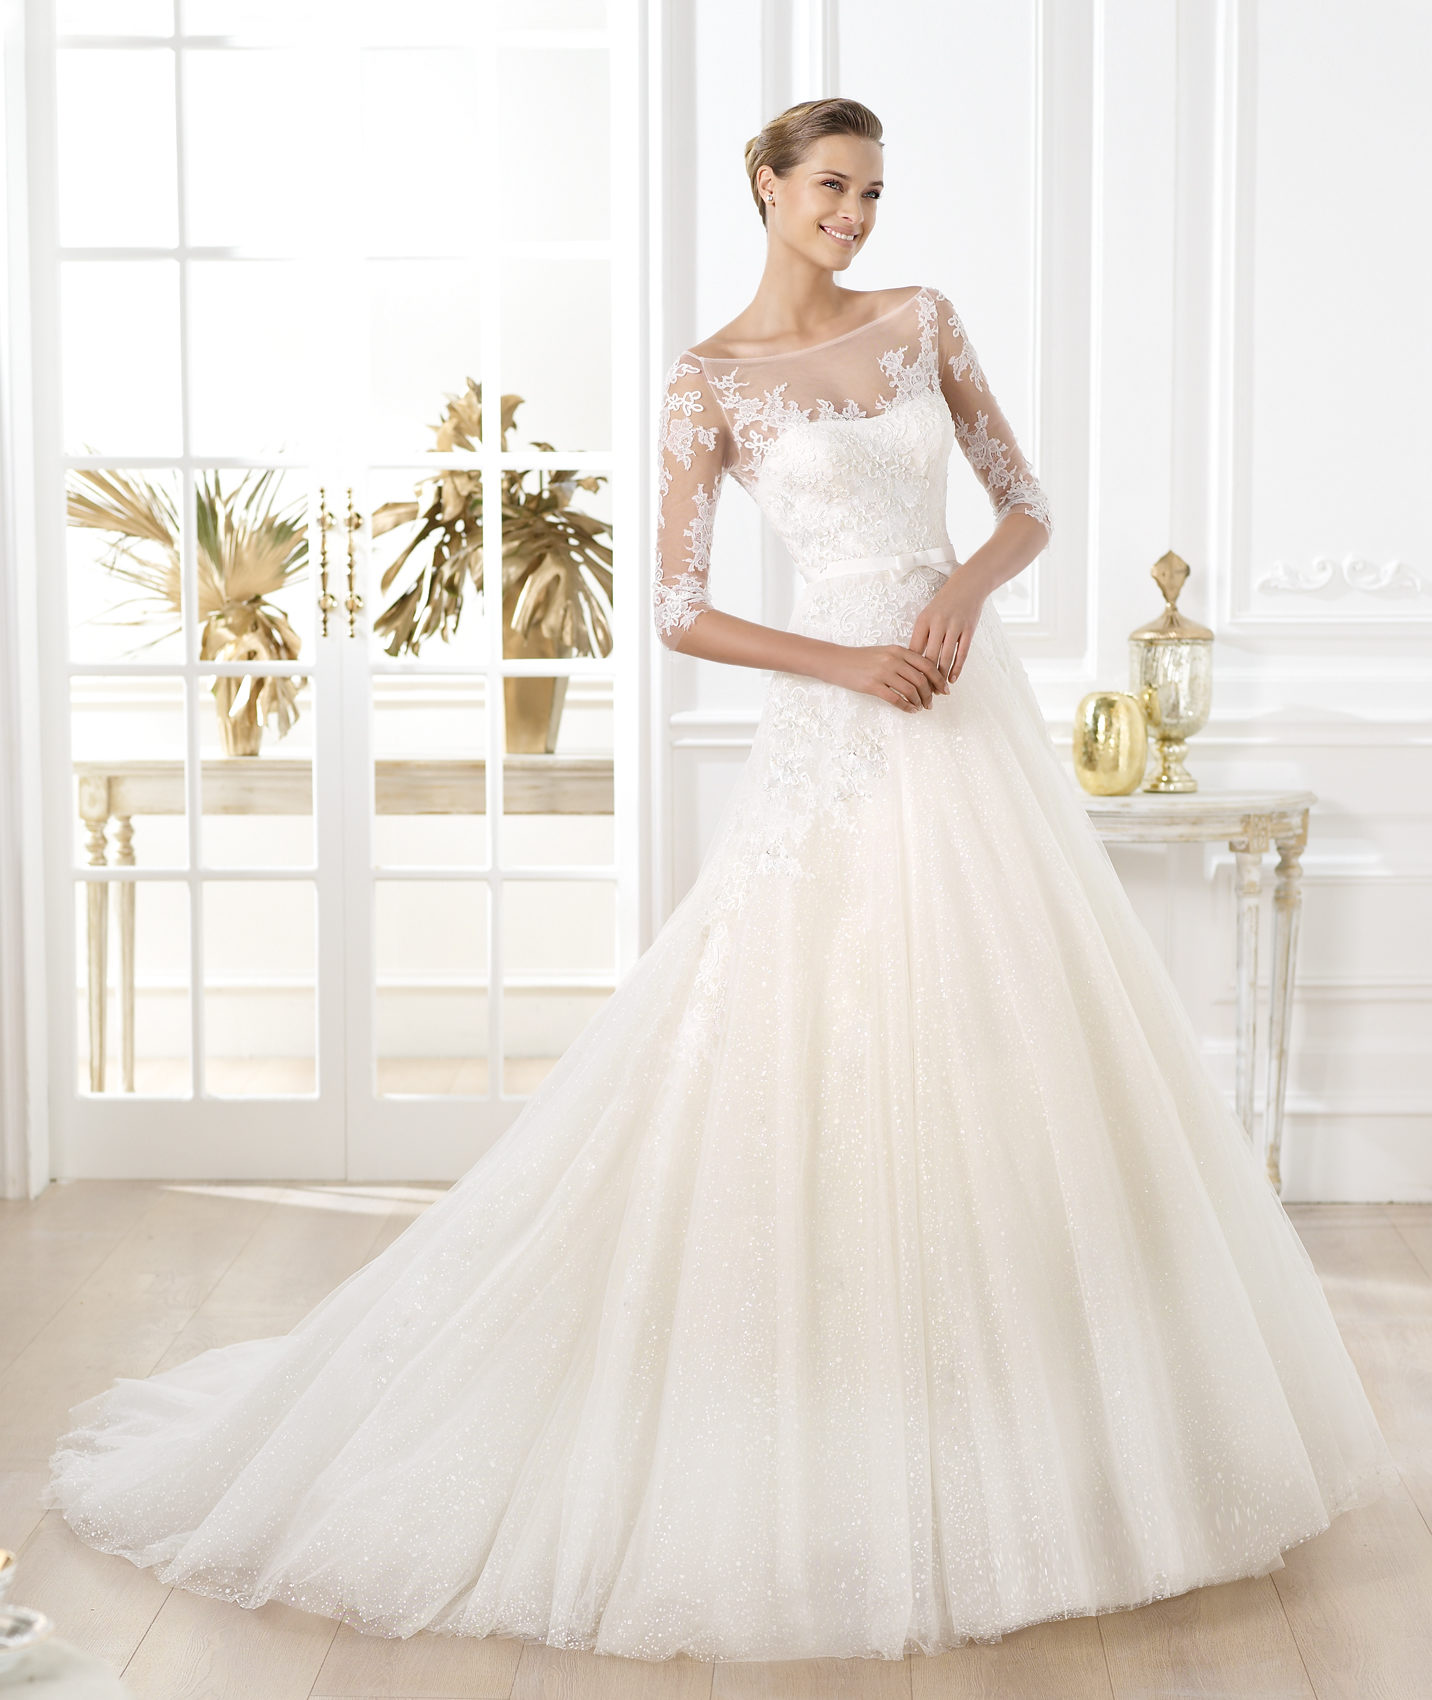 Beautiful wedding gowns 2015 talibmag beautiful wedding gowns 2015 junglespirit Images